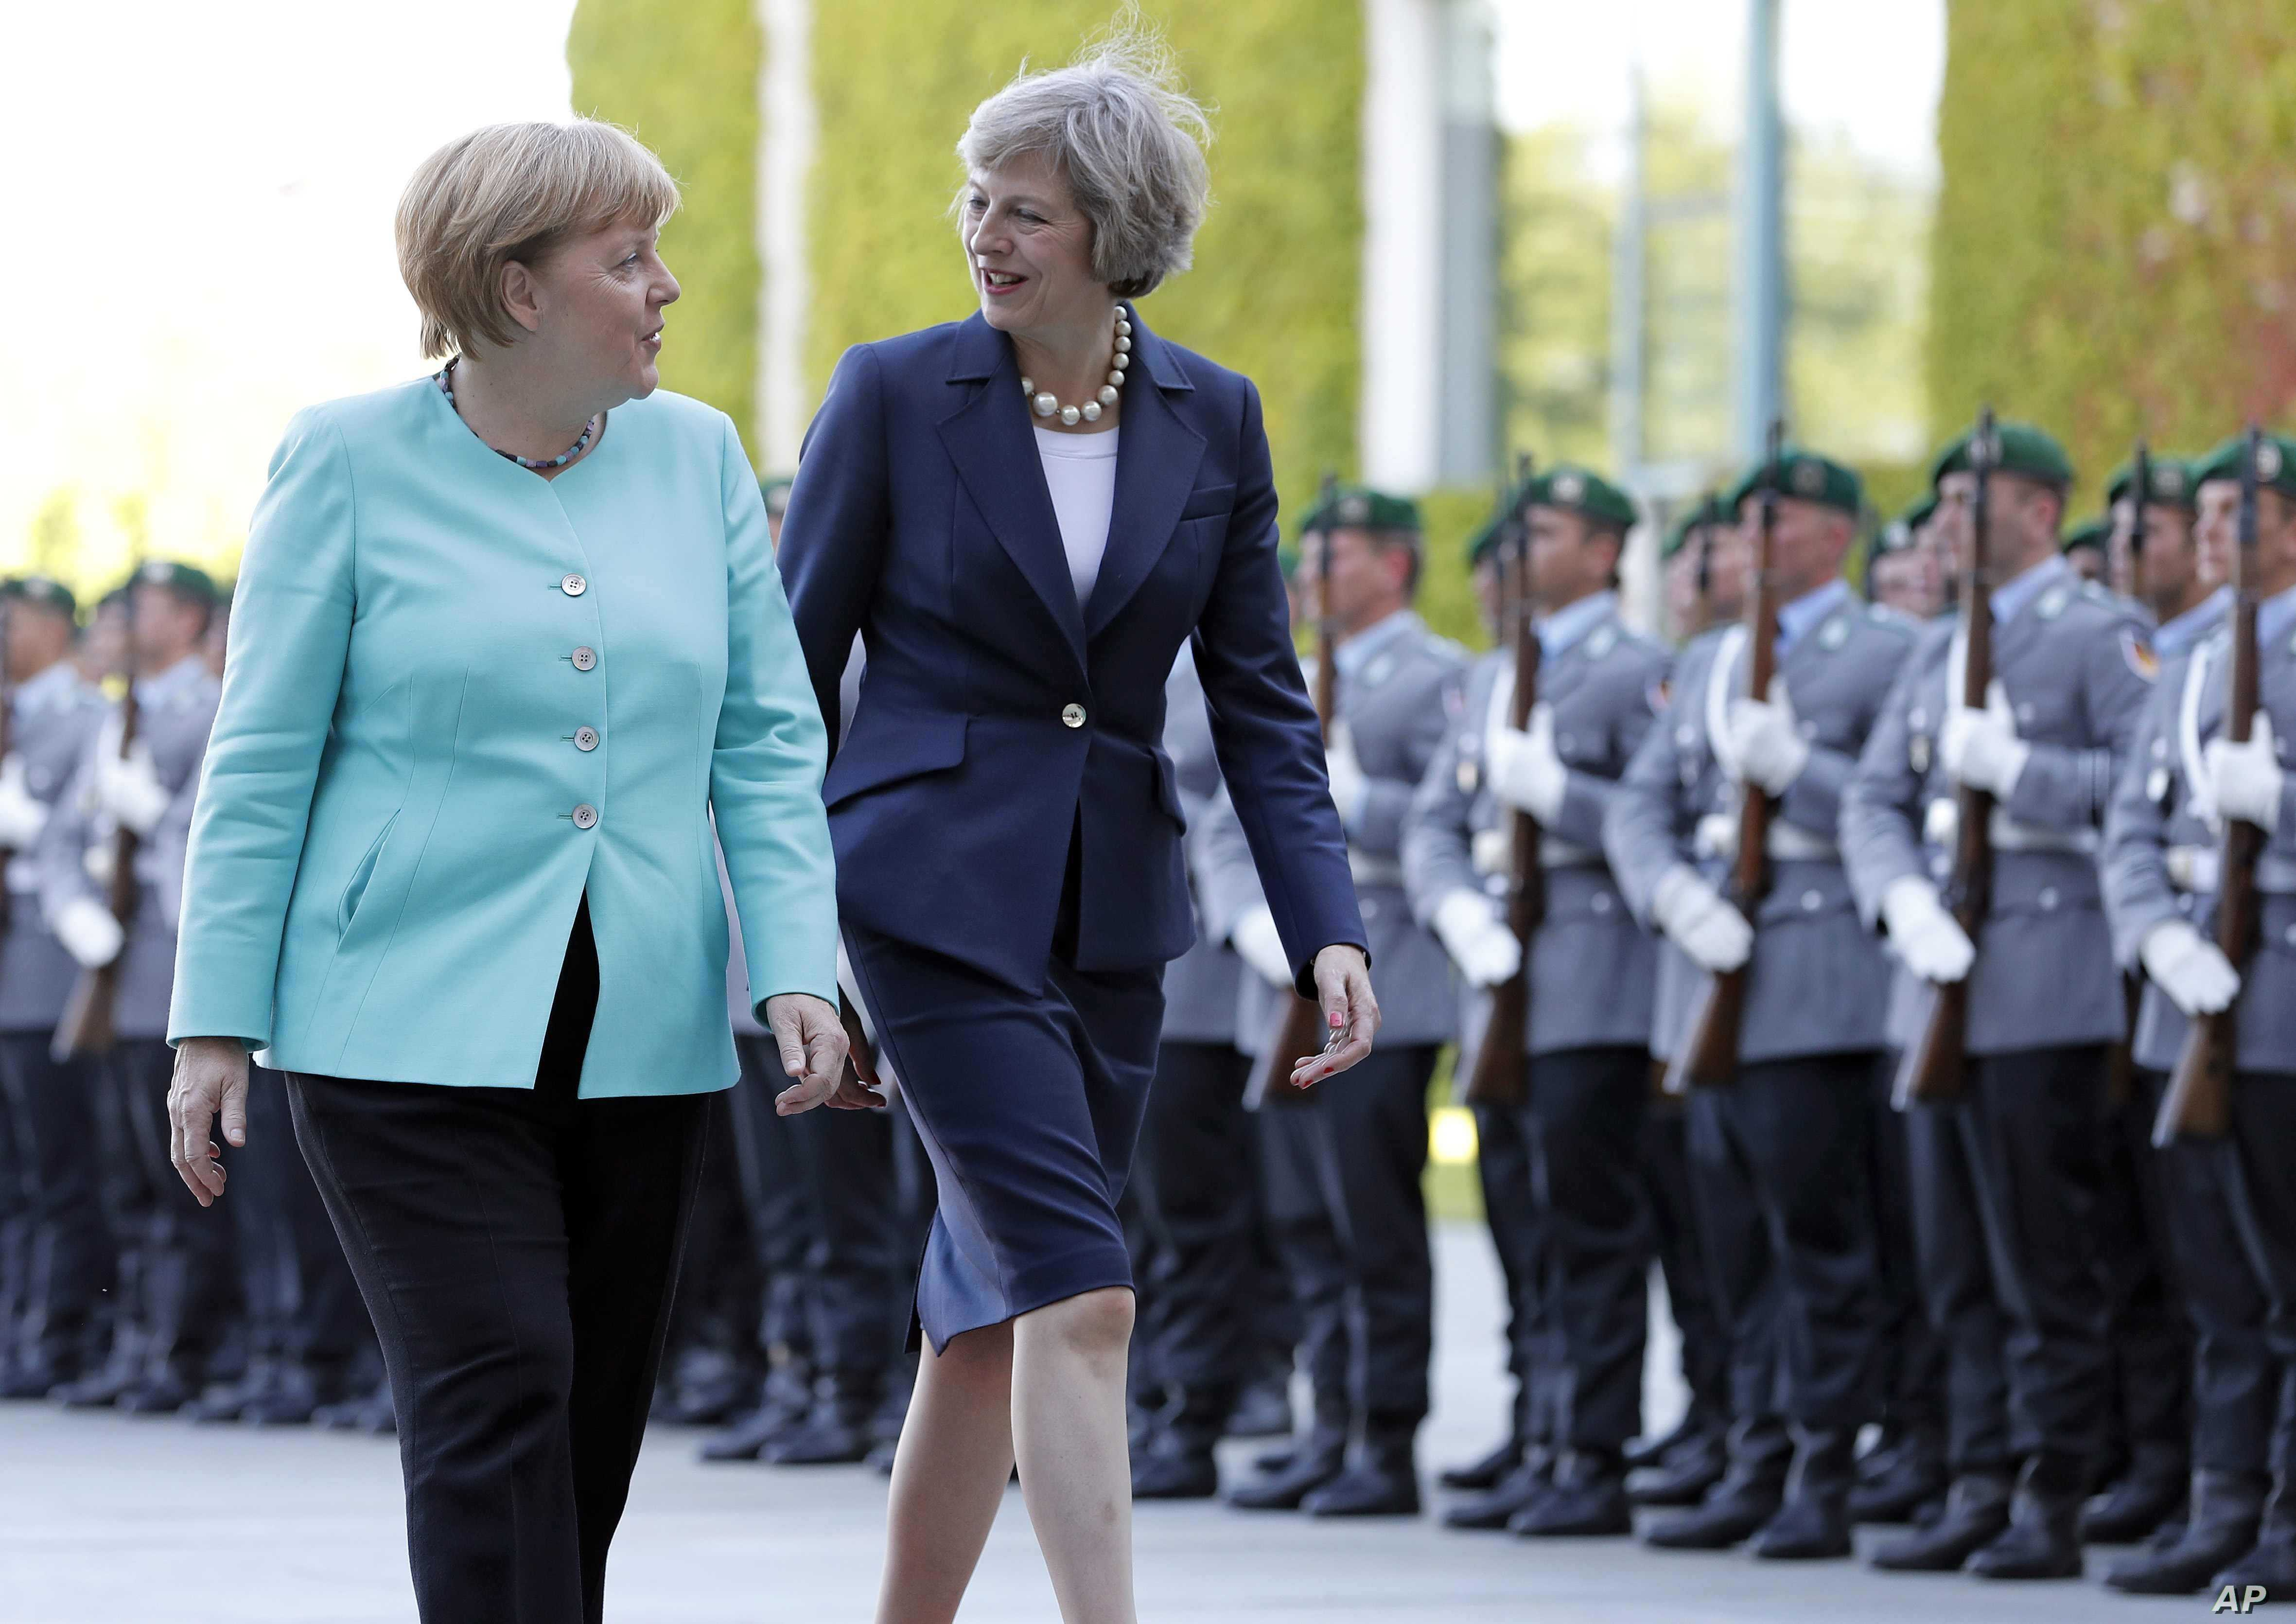 German Chancellor Angela Merkel, left, and British Prime Minister Theresa May walk on the red carpet during a military welcoming ceremony at the chancellery in Berlin Wednesday, July 20, 2016, on May's first foreign trip after being named British Pri...